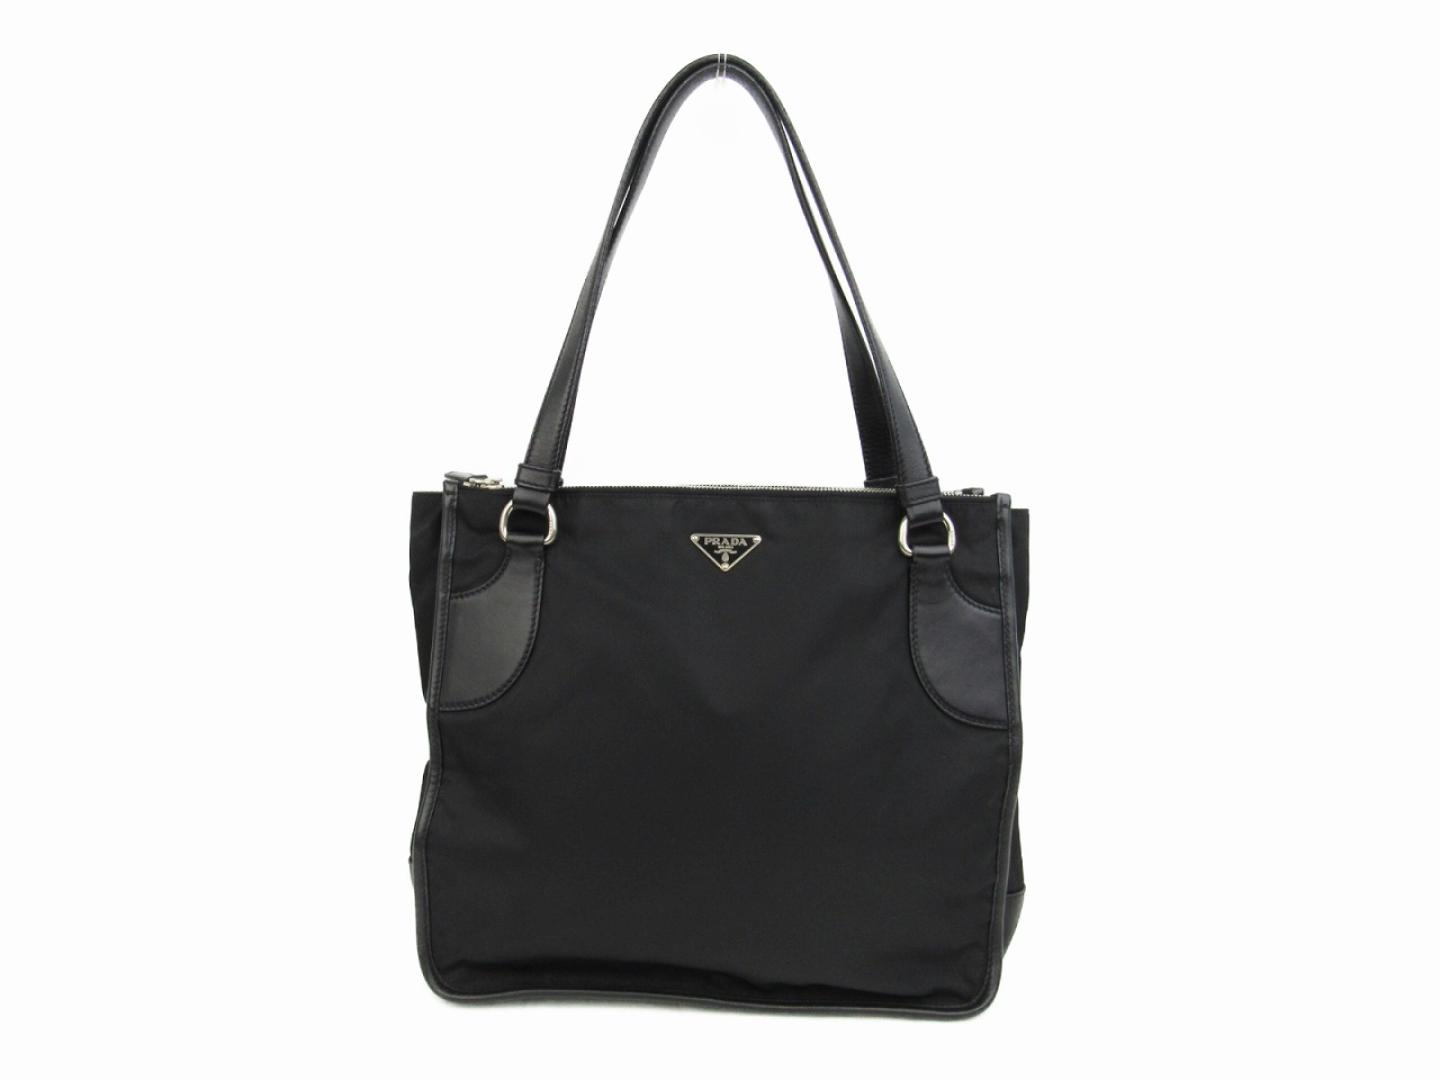 1d12828101 BRANDOFF  Authentic PRADA tote Bag Shoulder Bag nylon Black ...